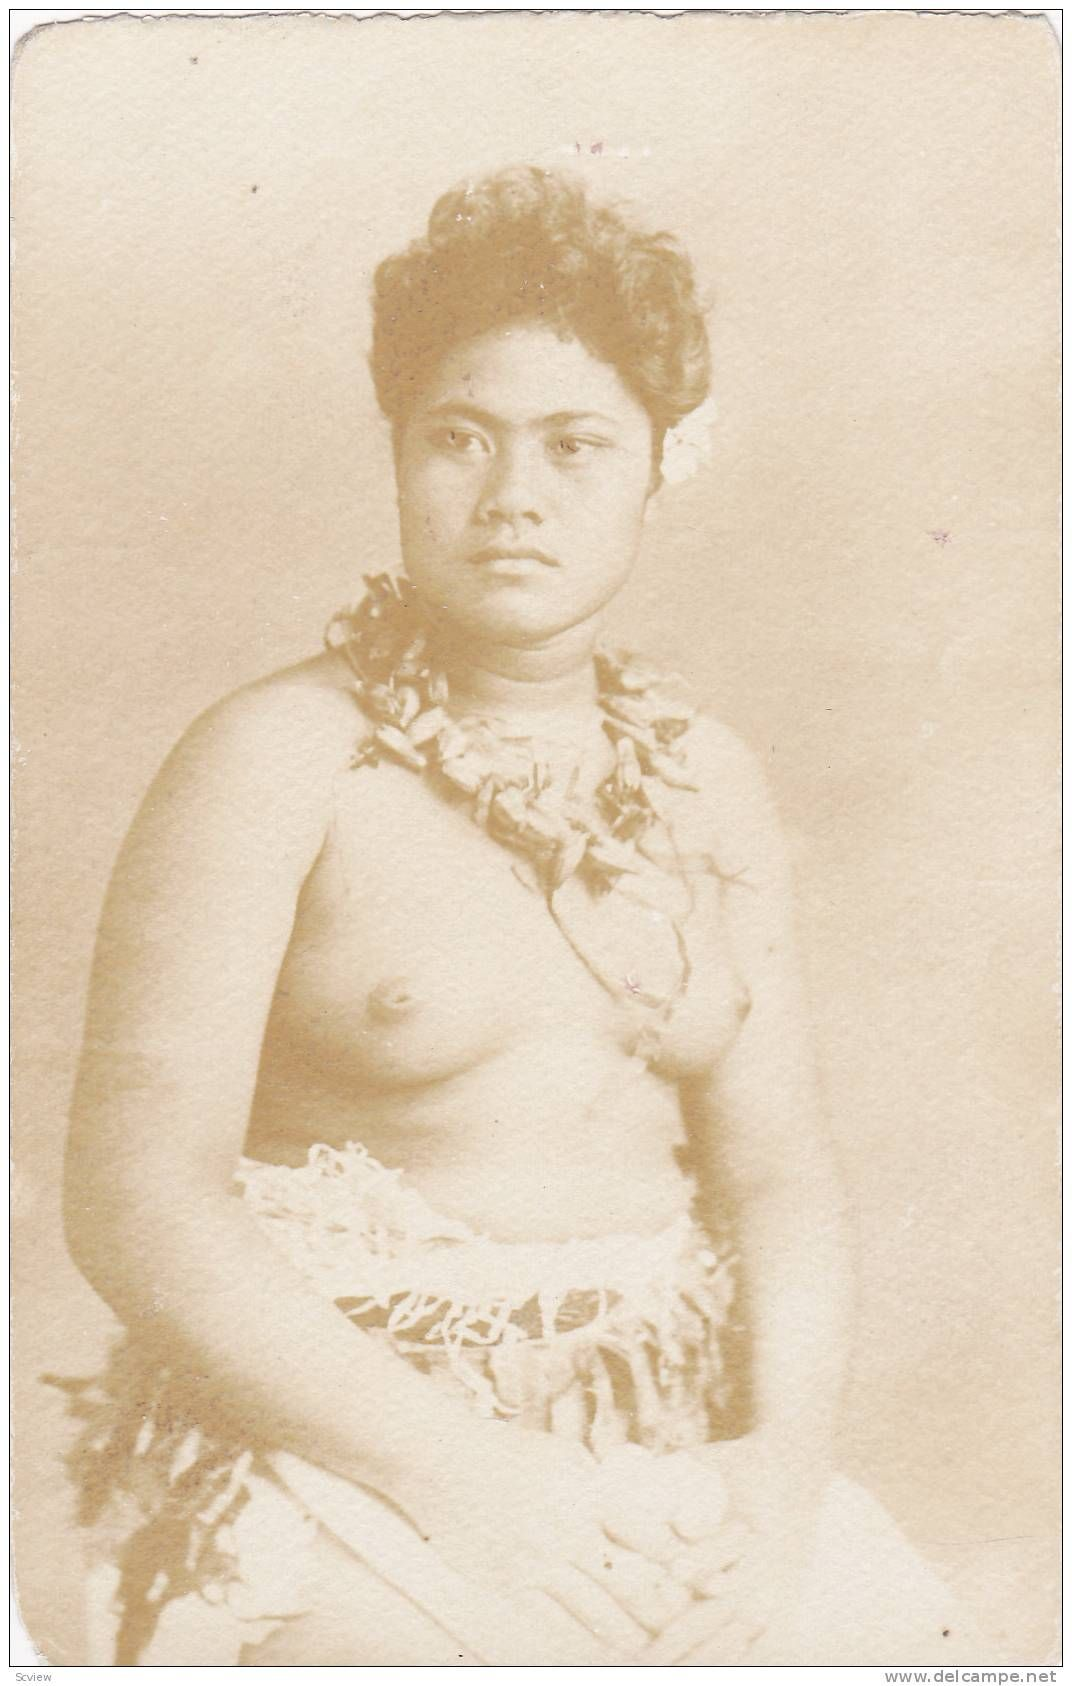 Topless women in samoa